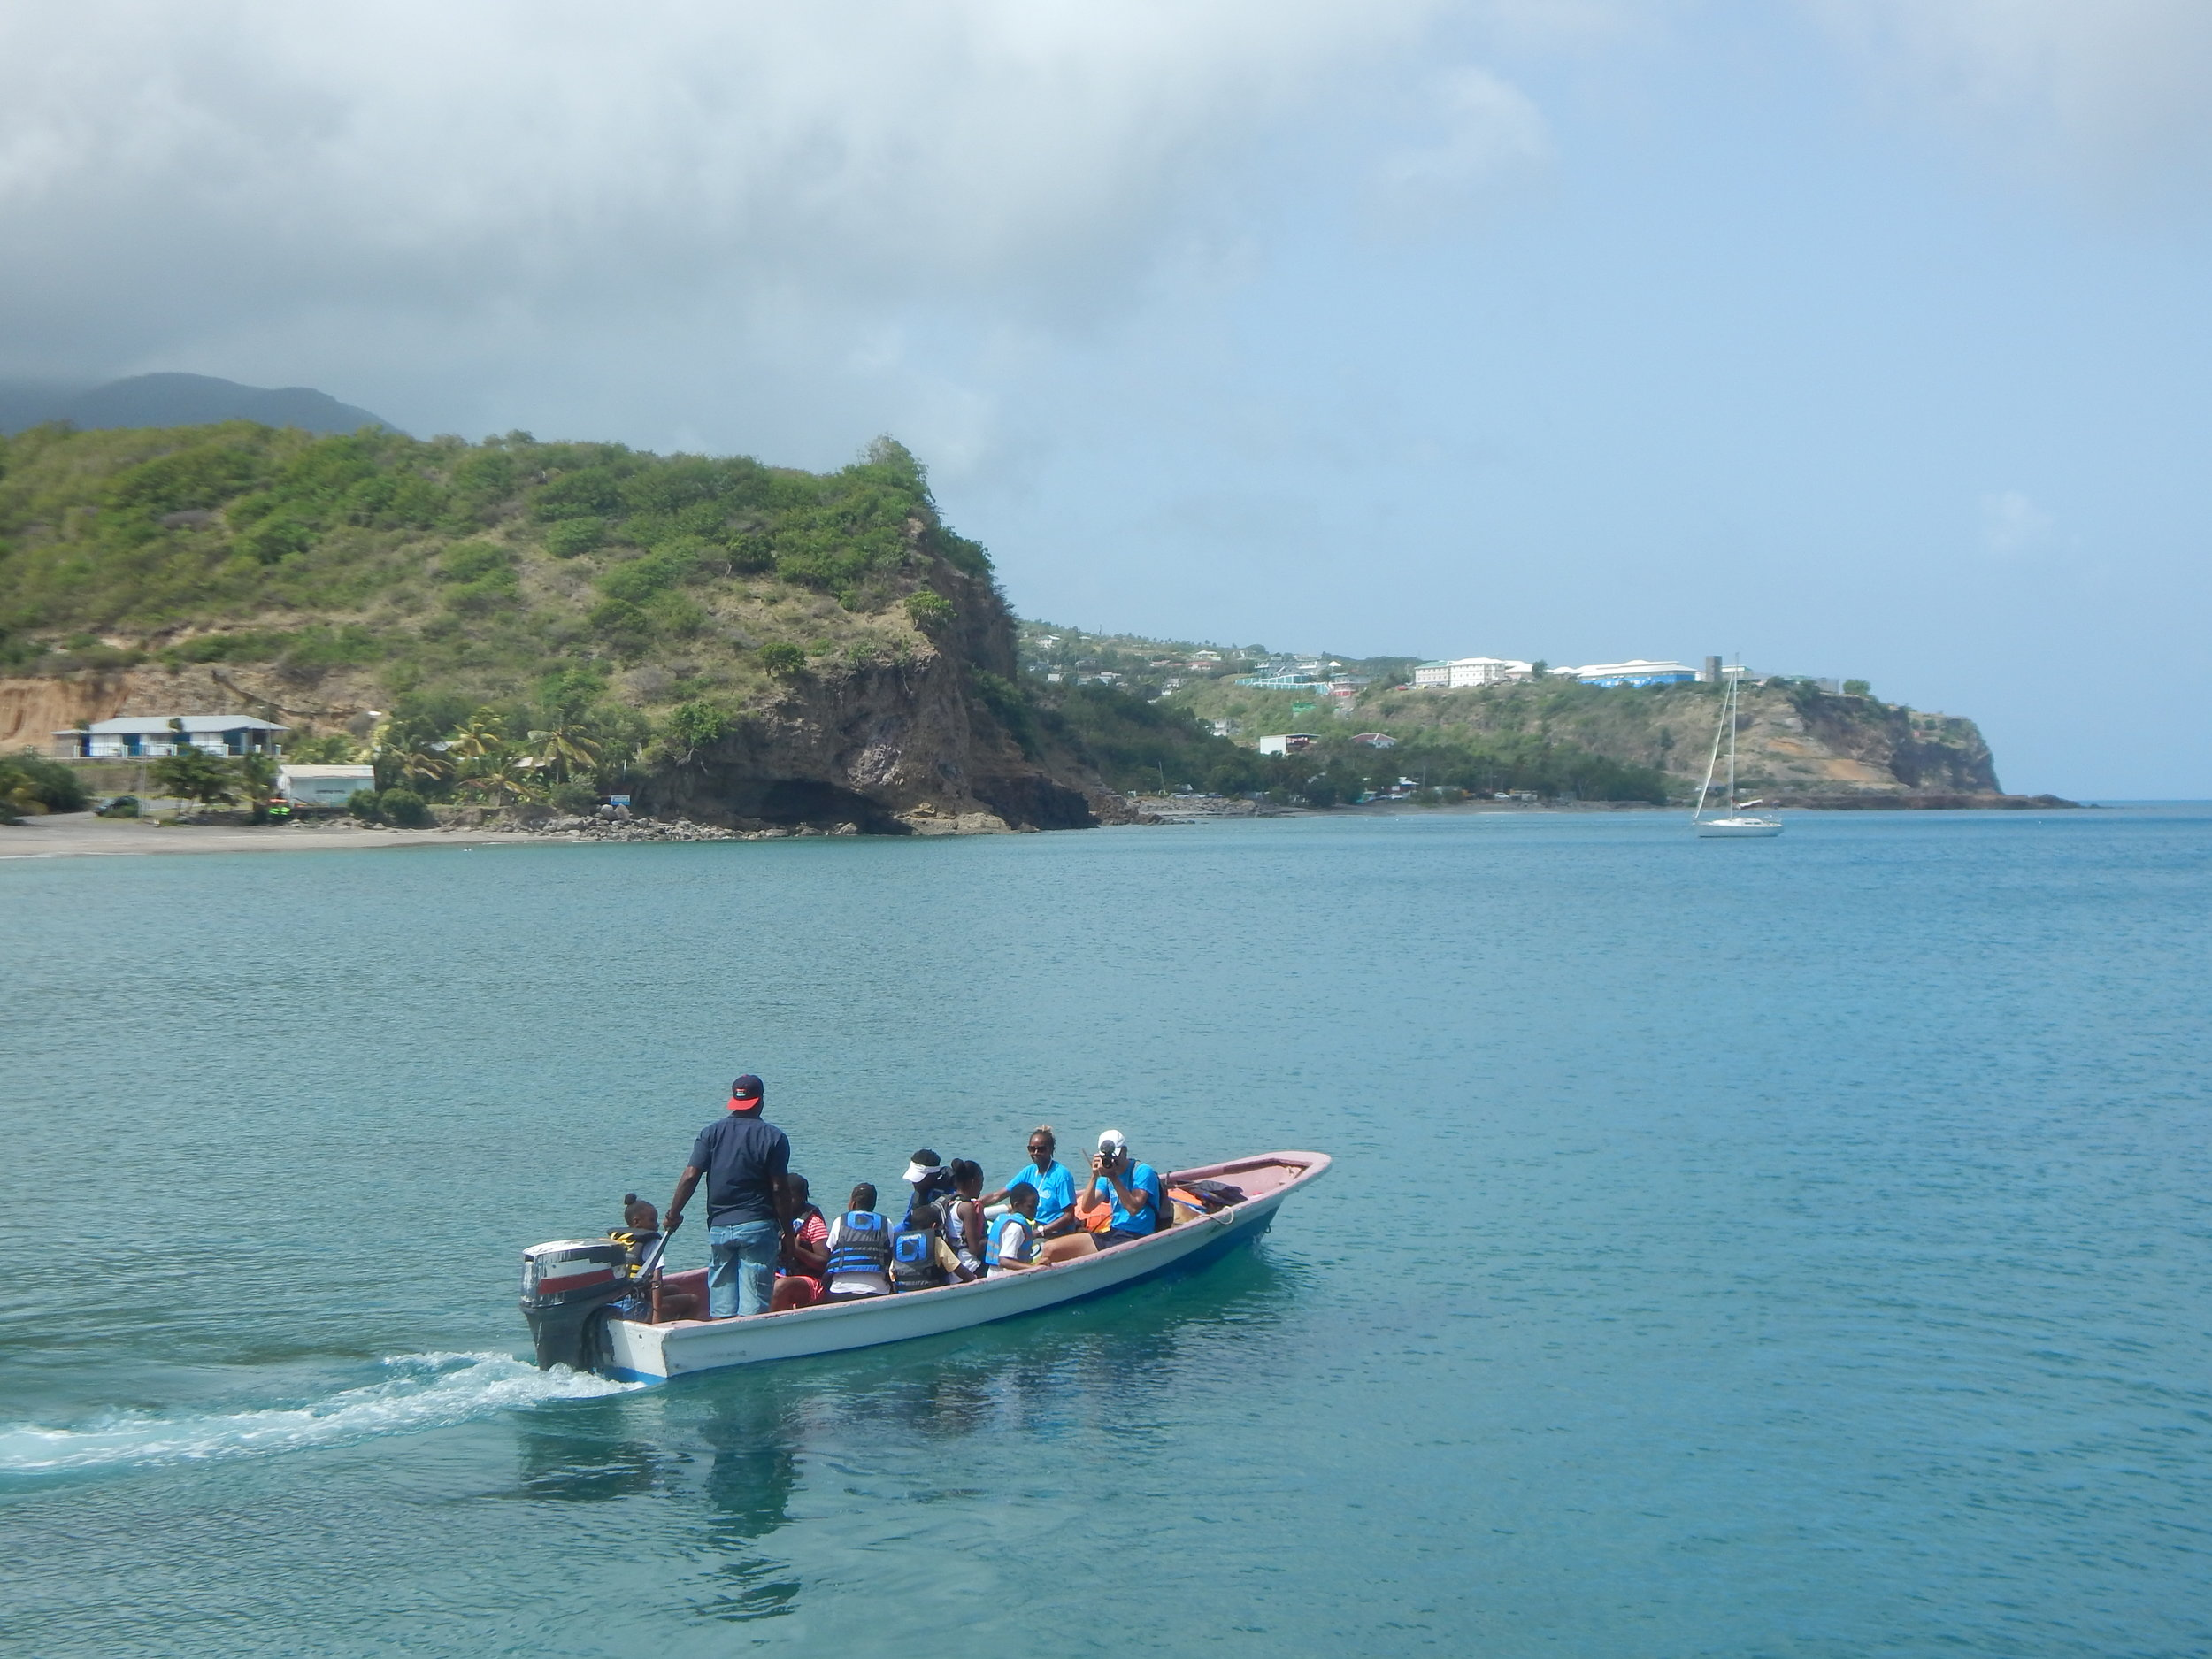 Setting off on a journey to a hidden beach